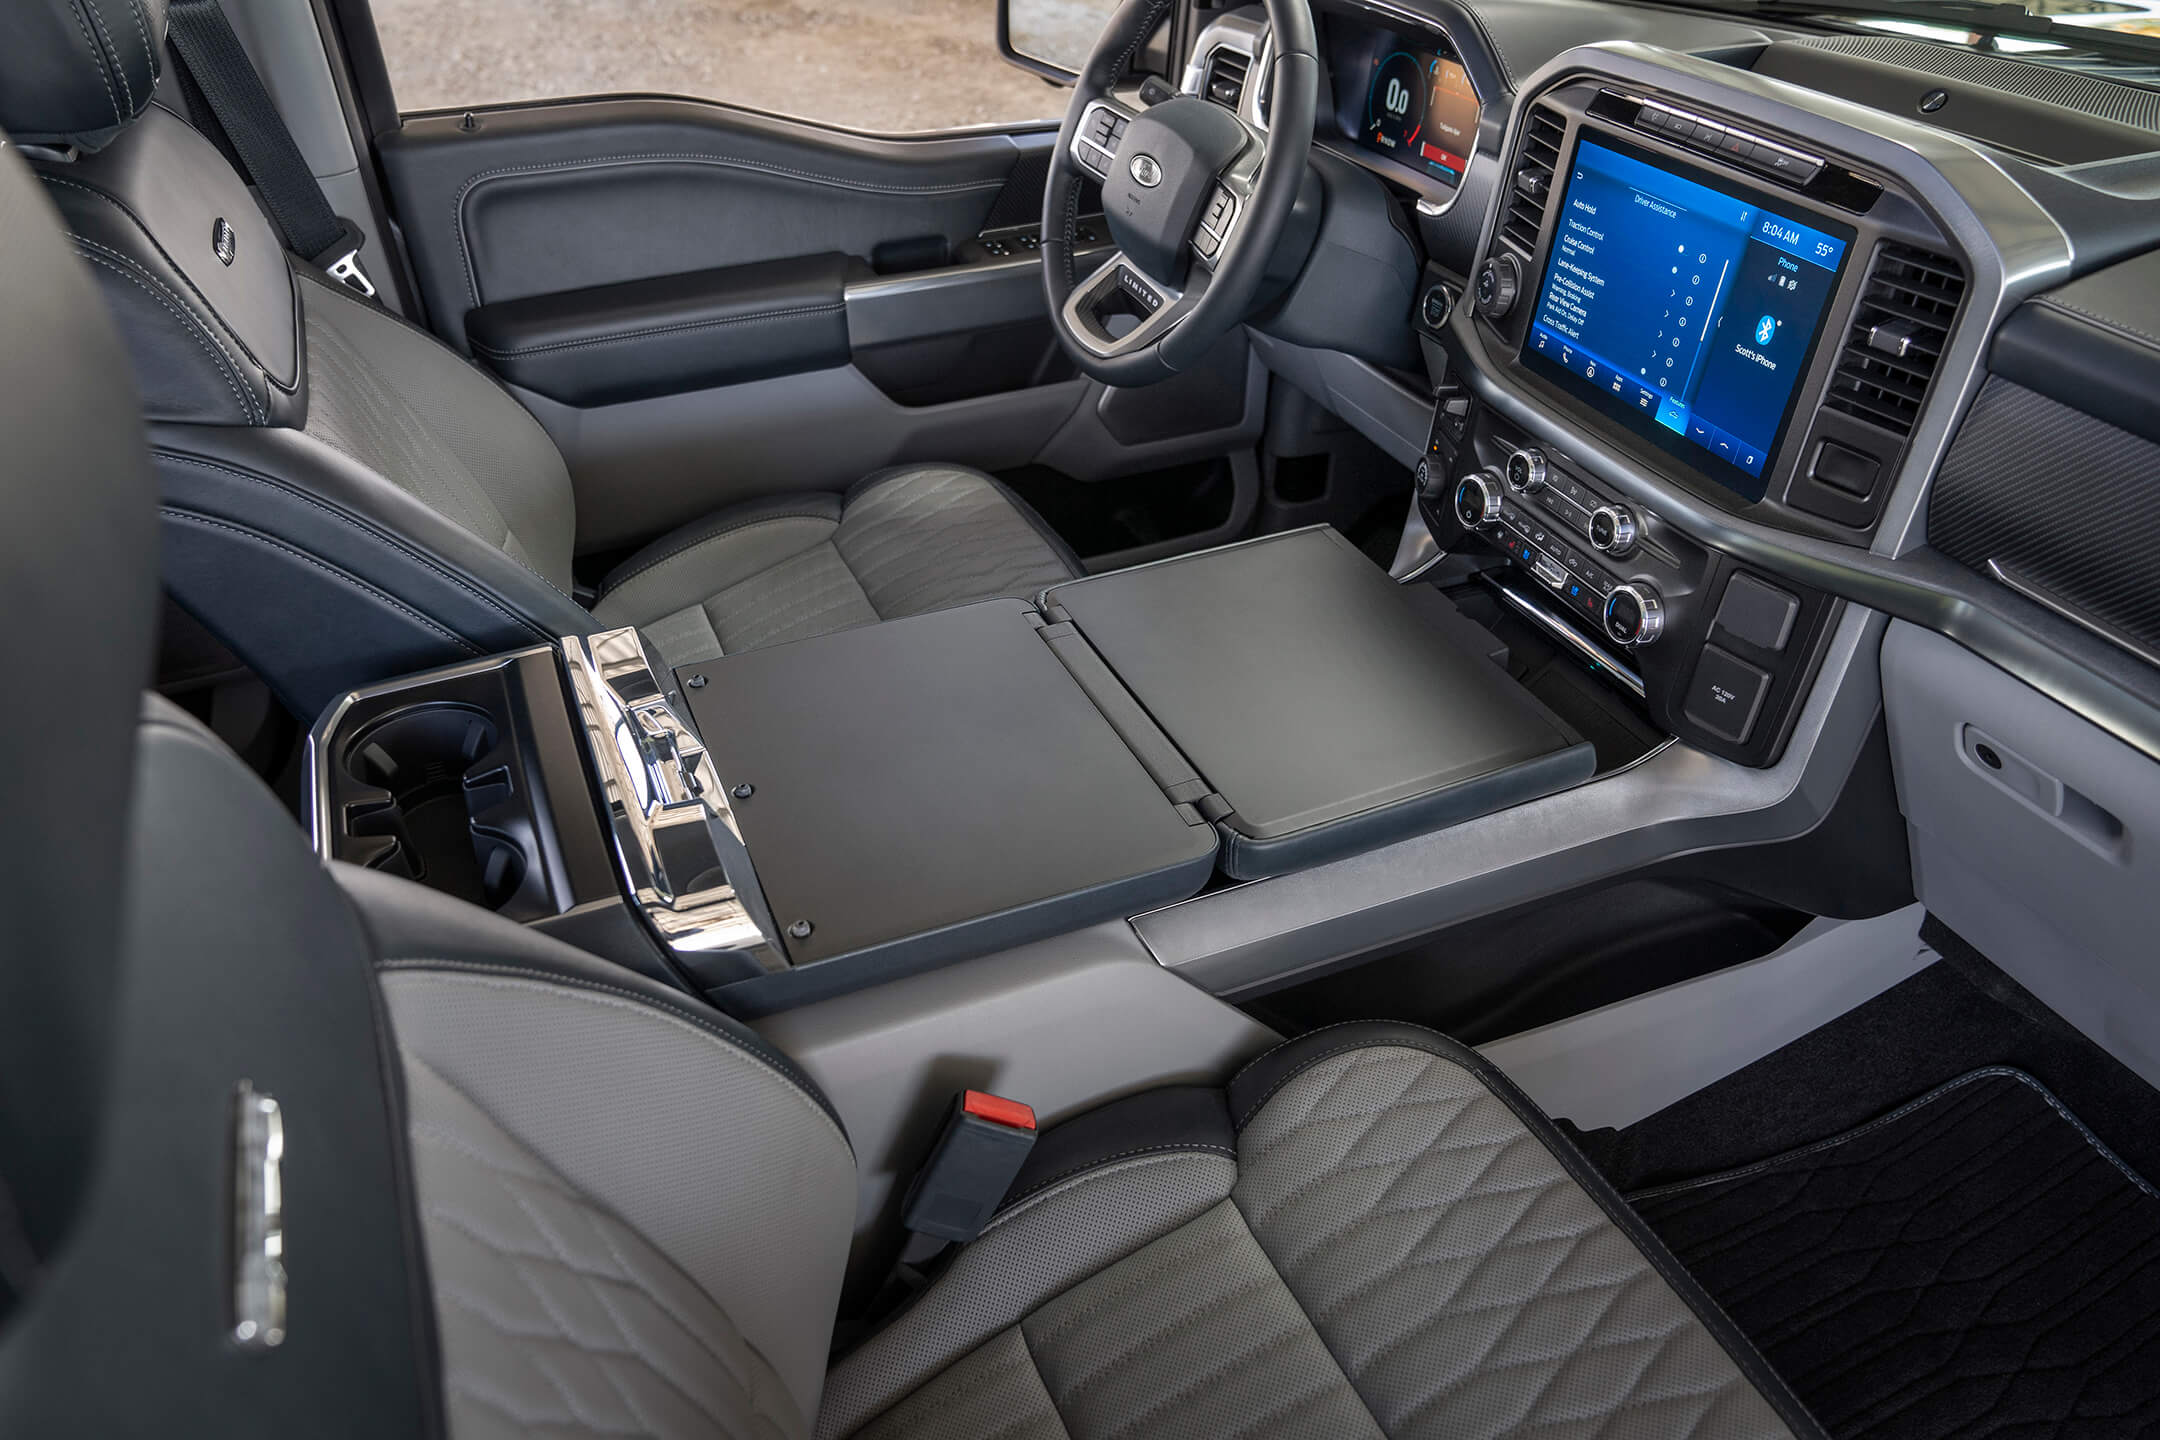 ford f150 interior layout and seating